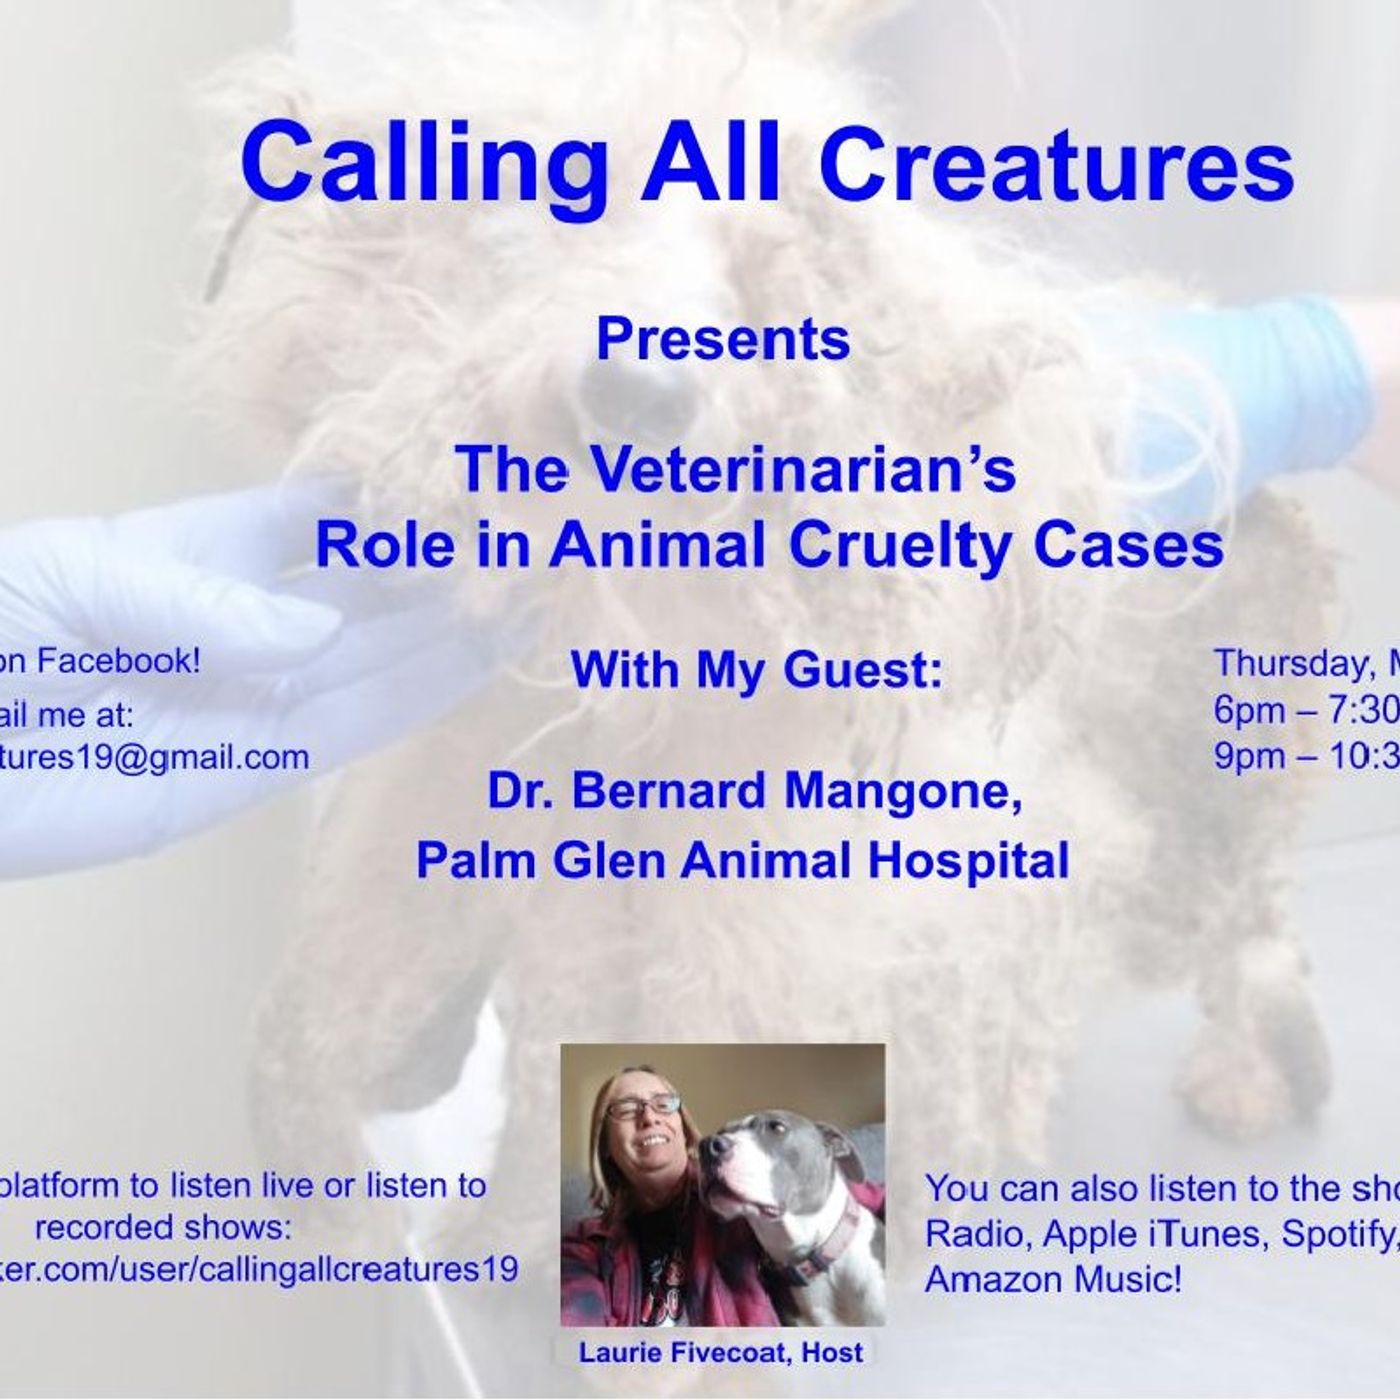 Calling All Creatures Presents The Veterinarian's Role in Animal Cruelty Investigations